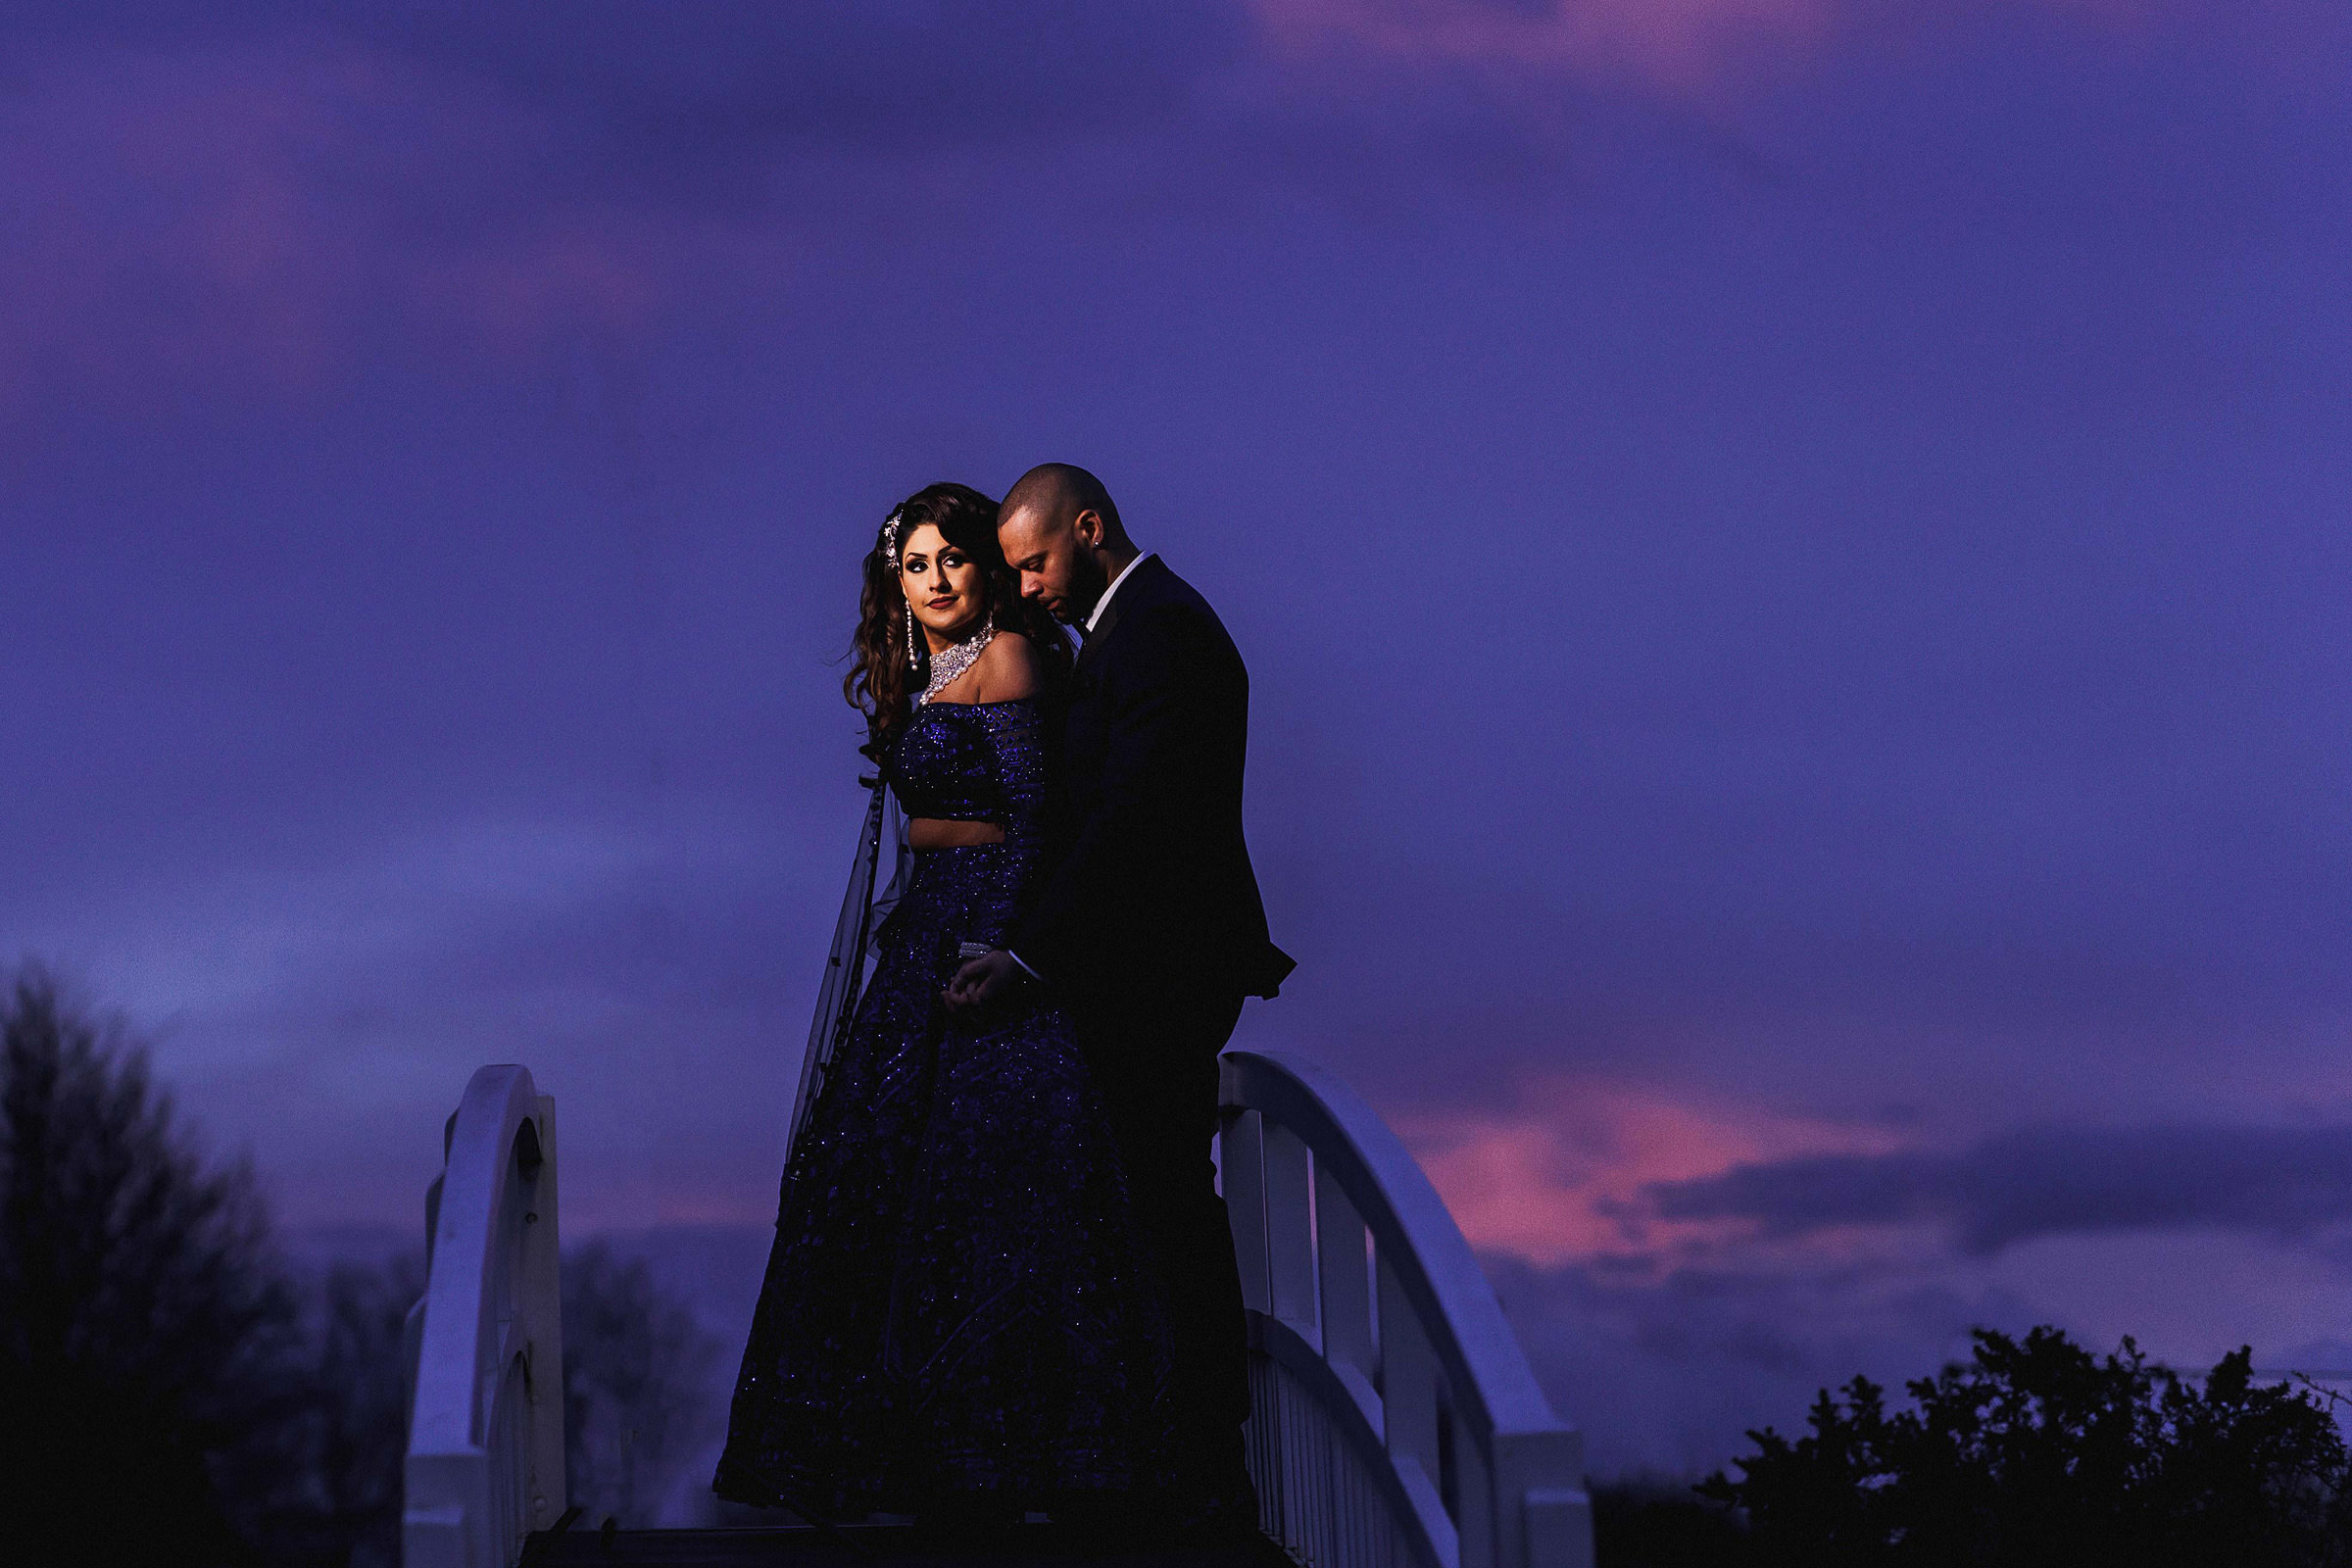 Dramatic couple portrait against purple sky - photo by f5 Photography